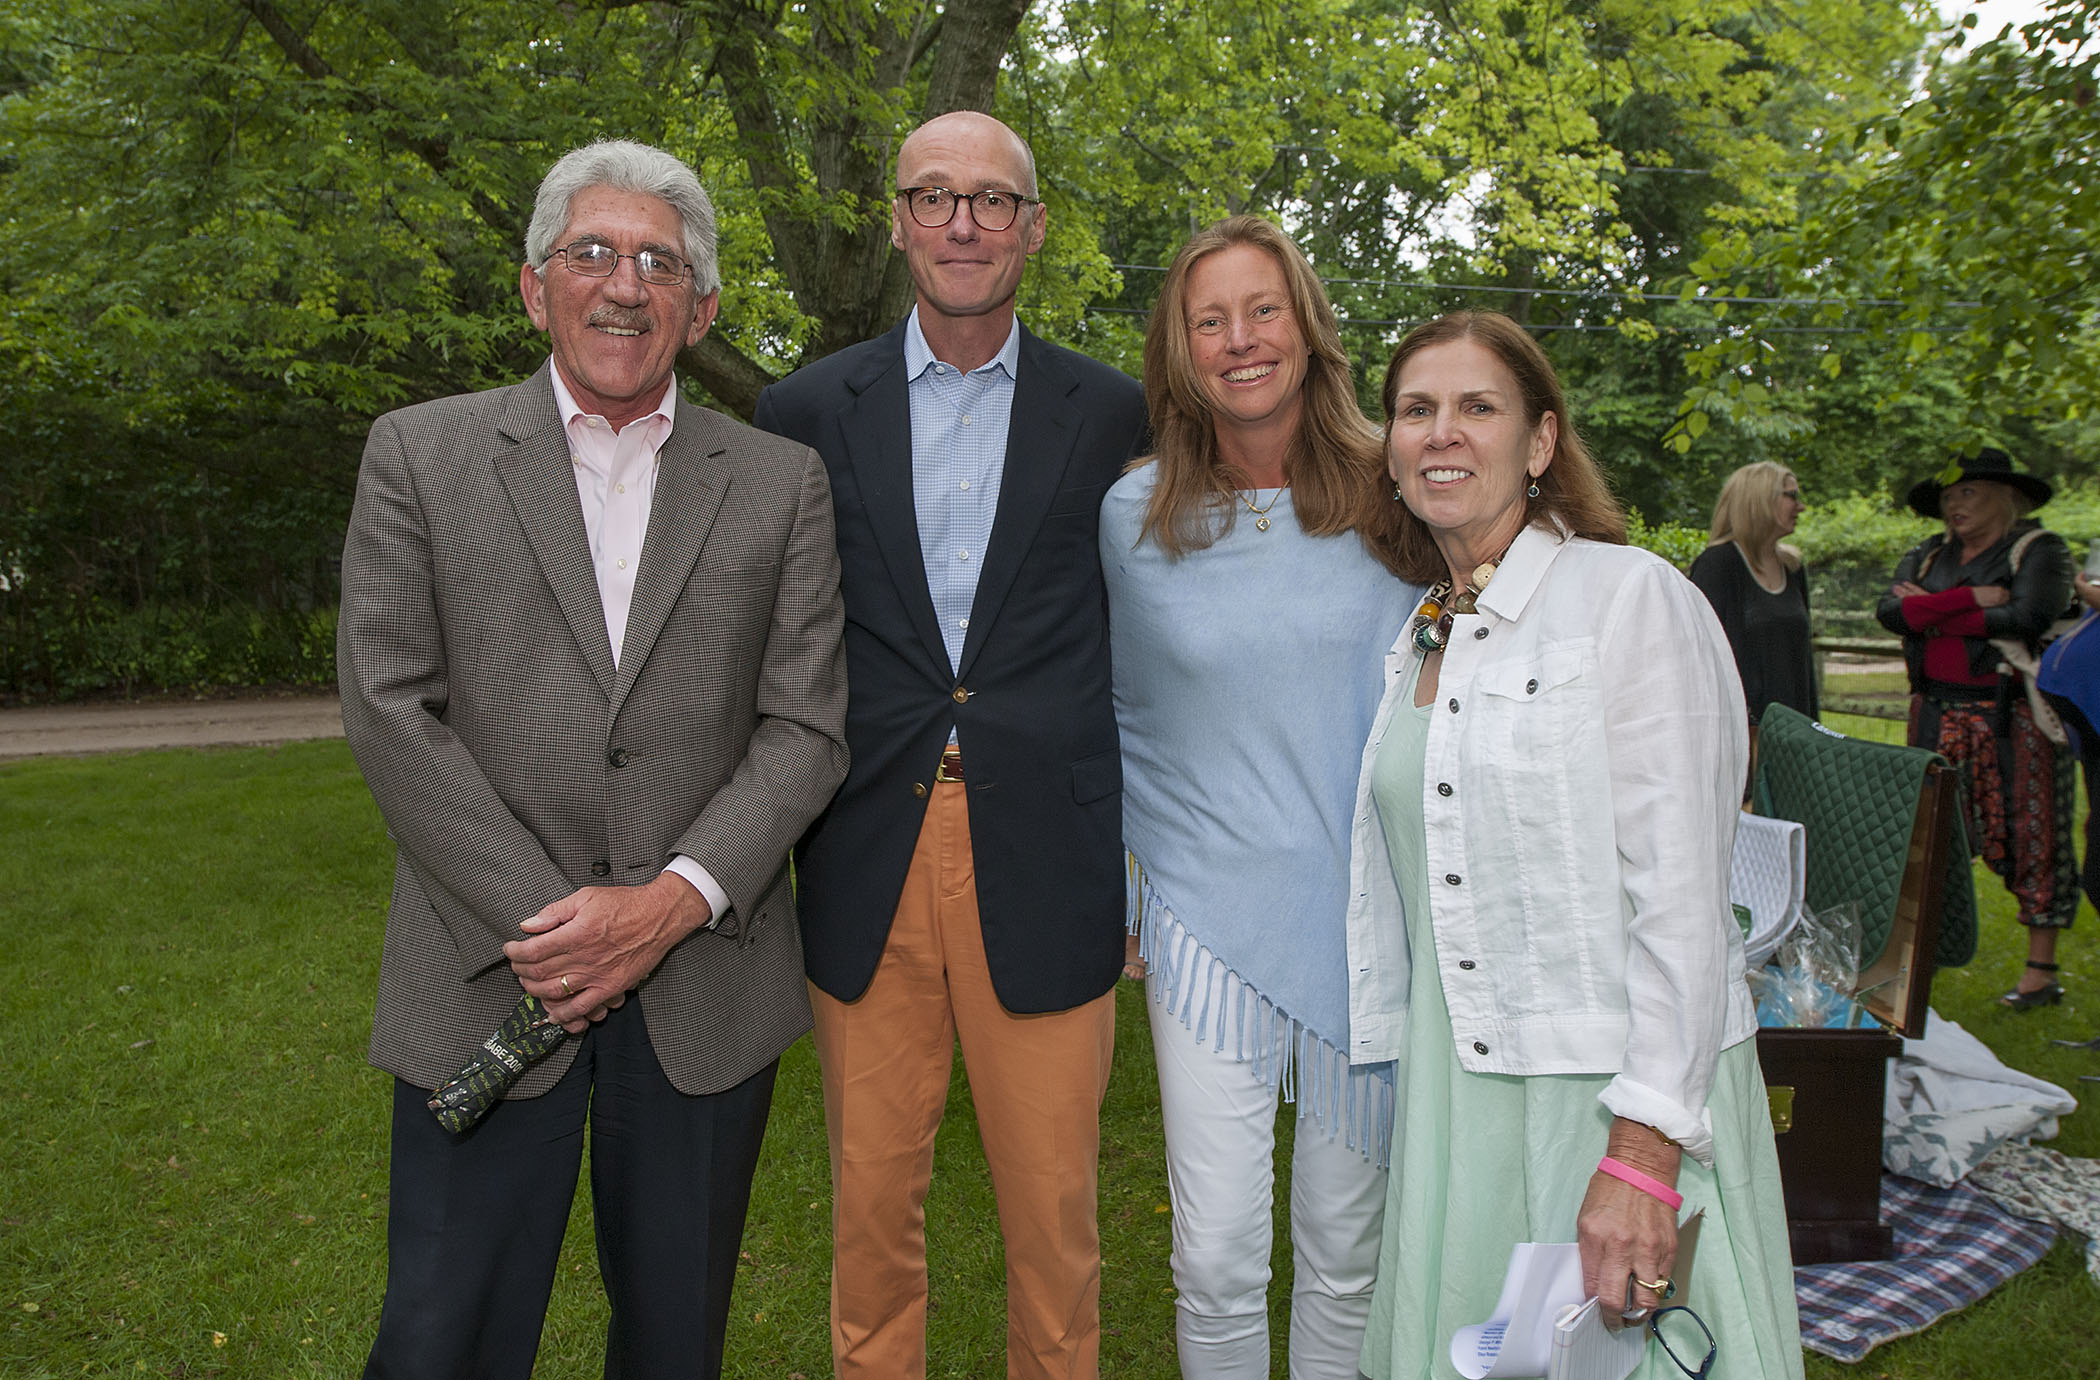 image: larry cantwell, dan mongan, anna bernasek and event chair maureen bluedorn at the benefit (credit: michael heller)